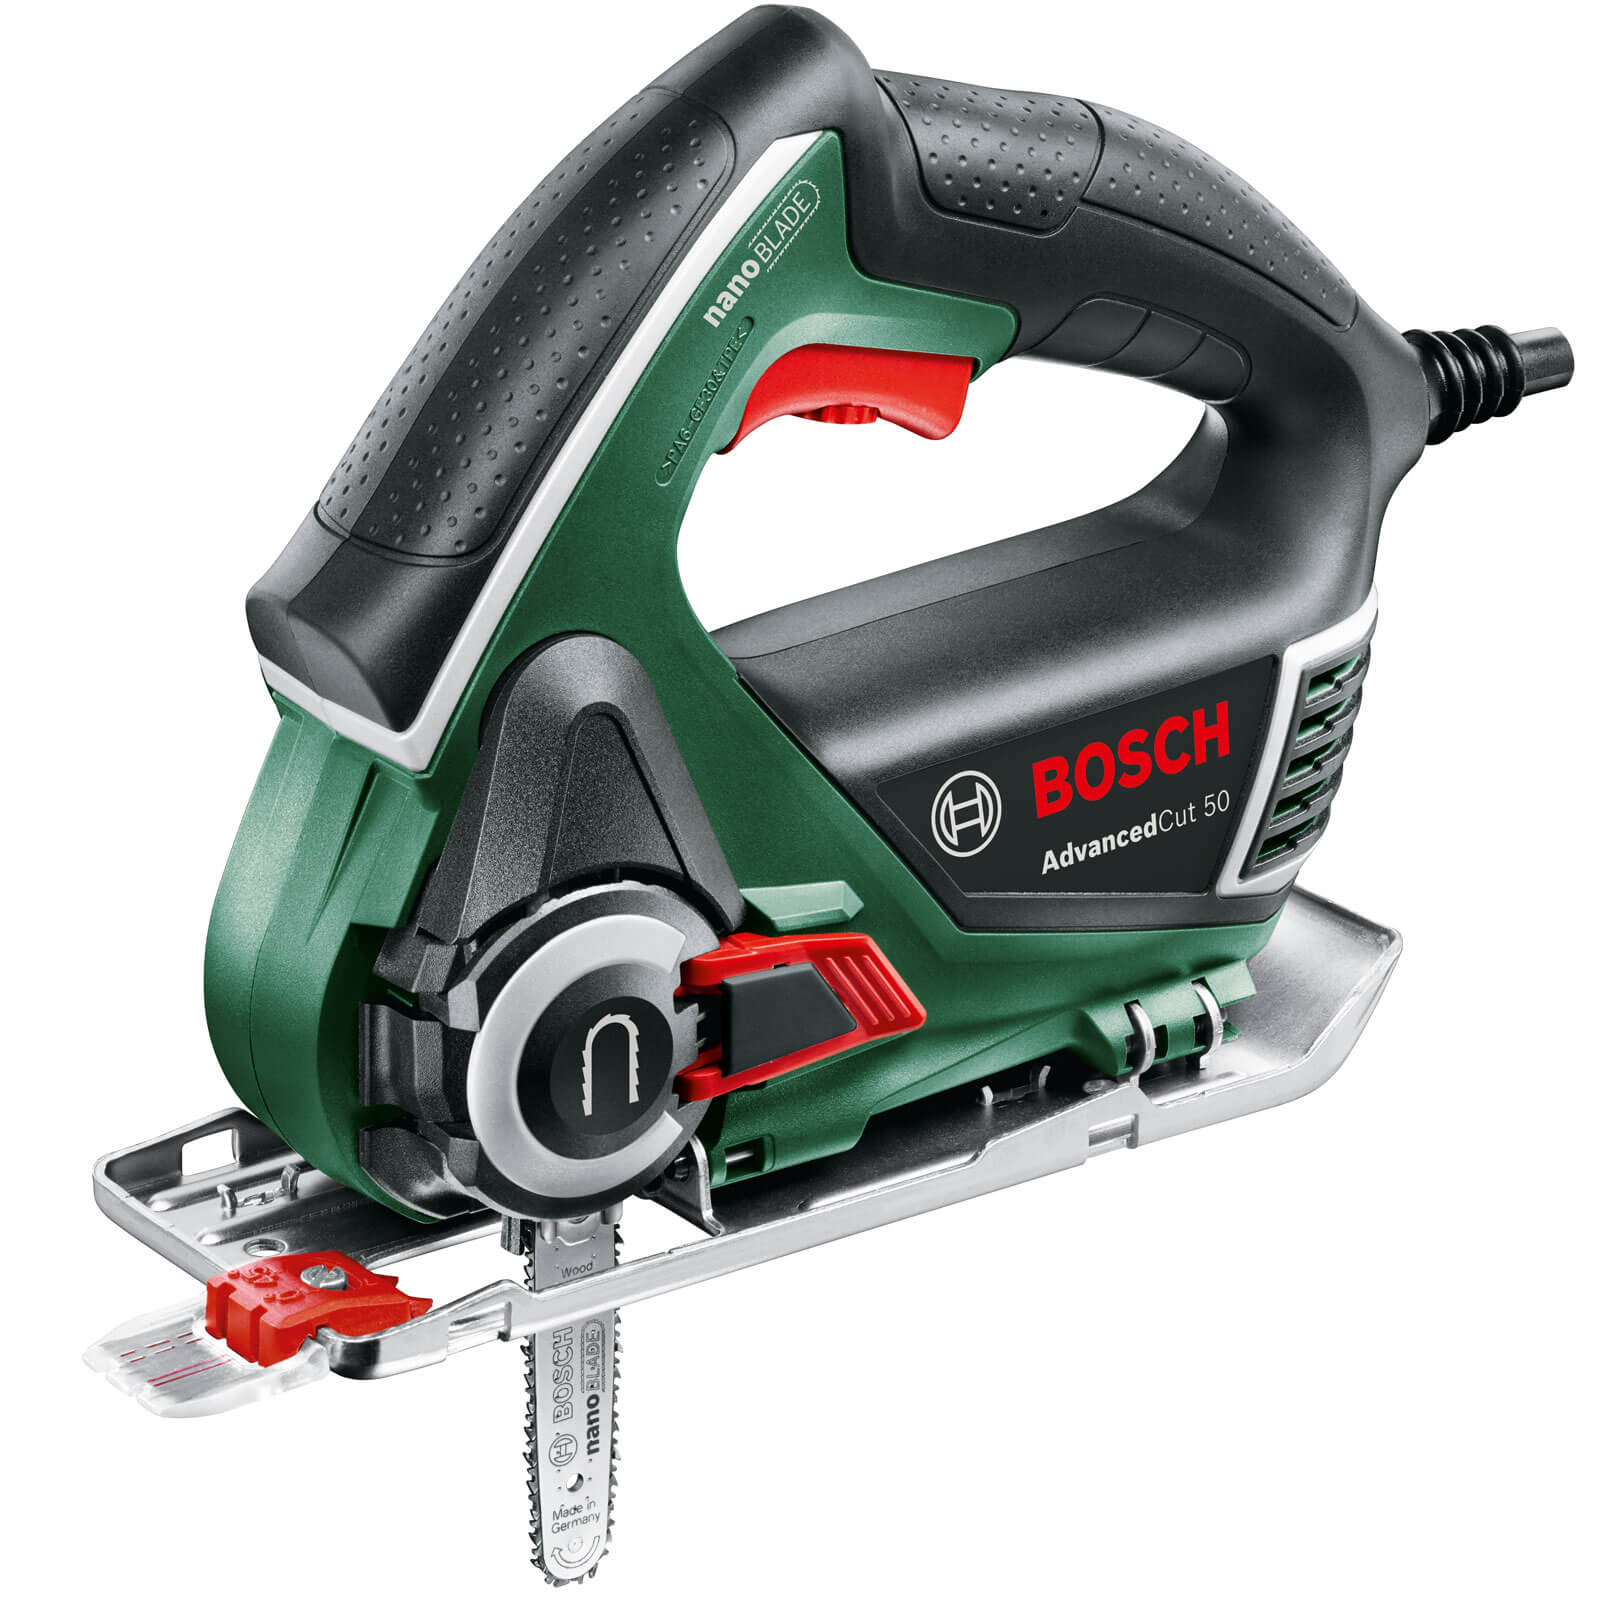 bosch advancedcut 50 electric nanoblade jigsaw. Black Bedroom Furniture Sets. Home Design Ideas